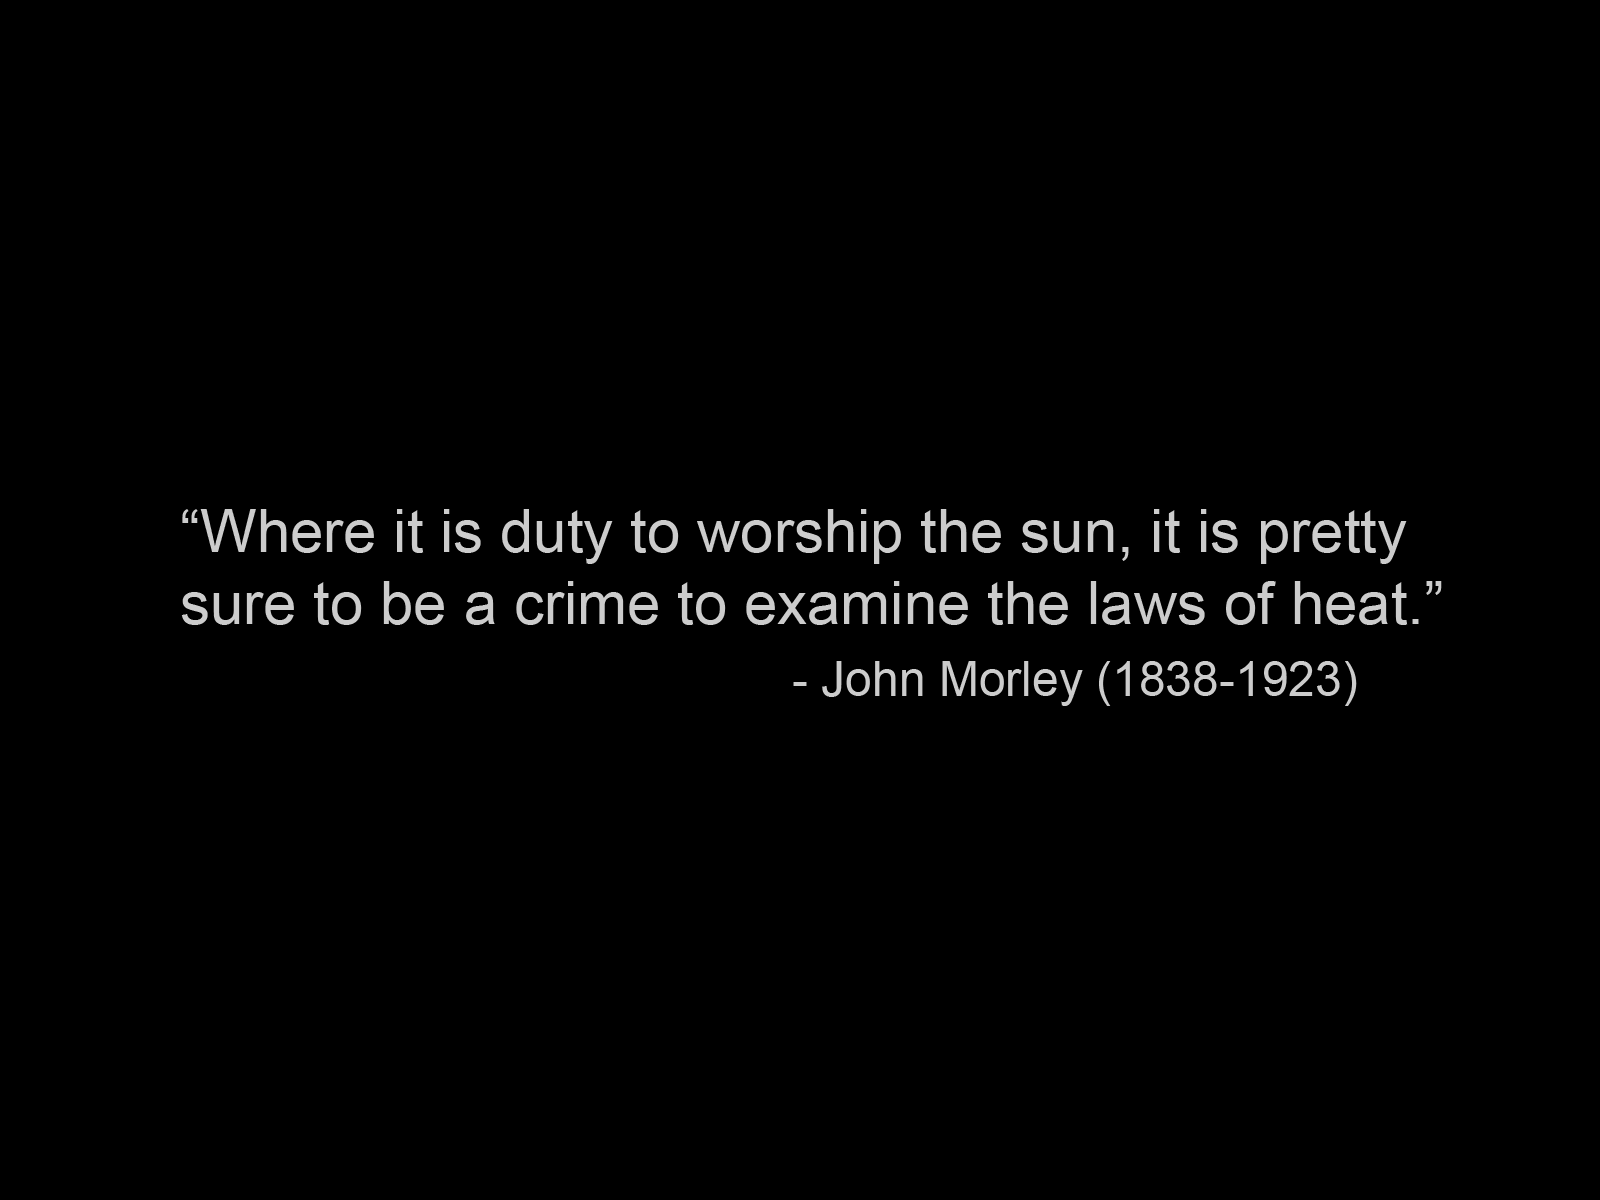 Where it is a duty to worship the sun it is pretty sure to be a crime to examine the laws of heat. John Morley